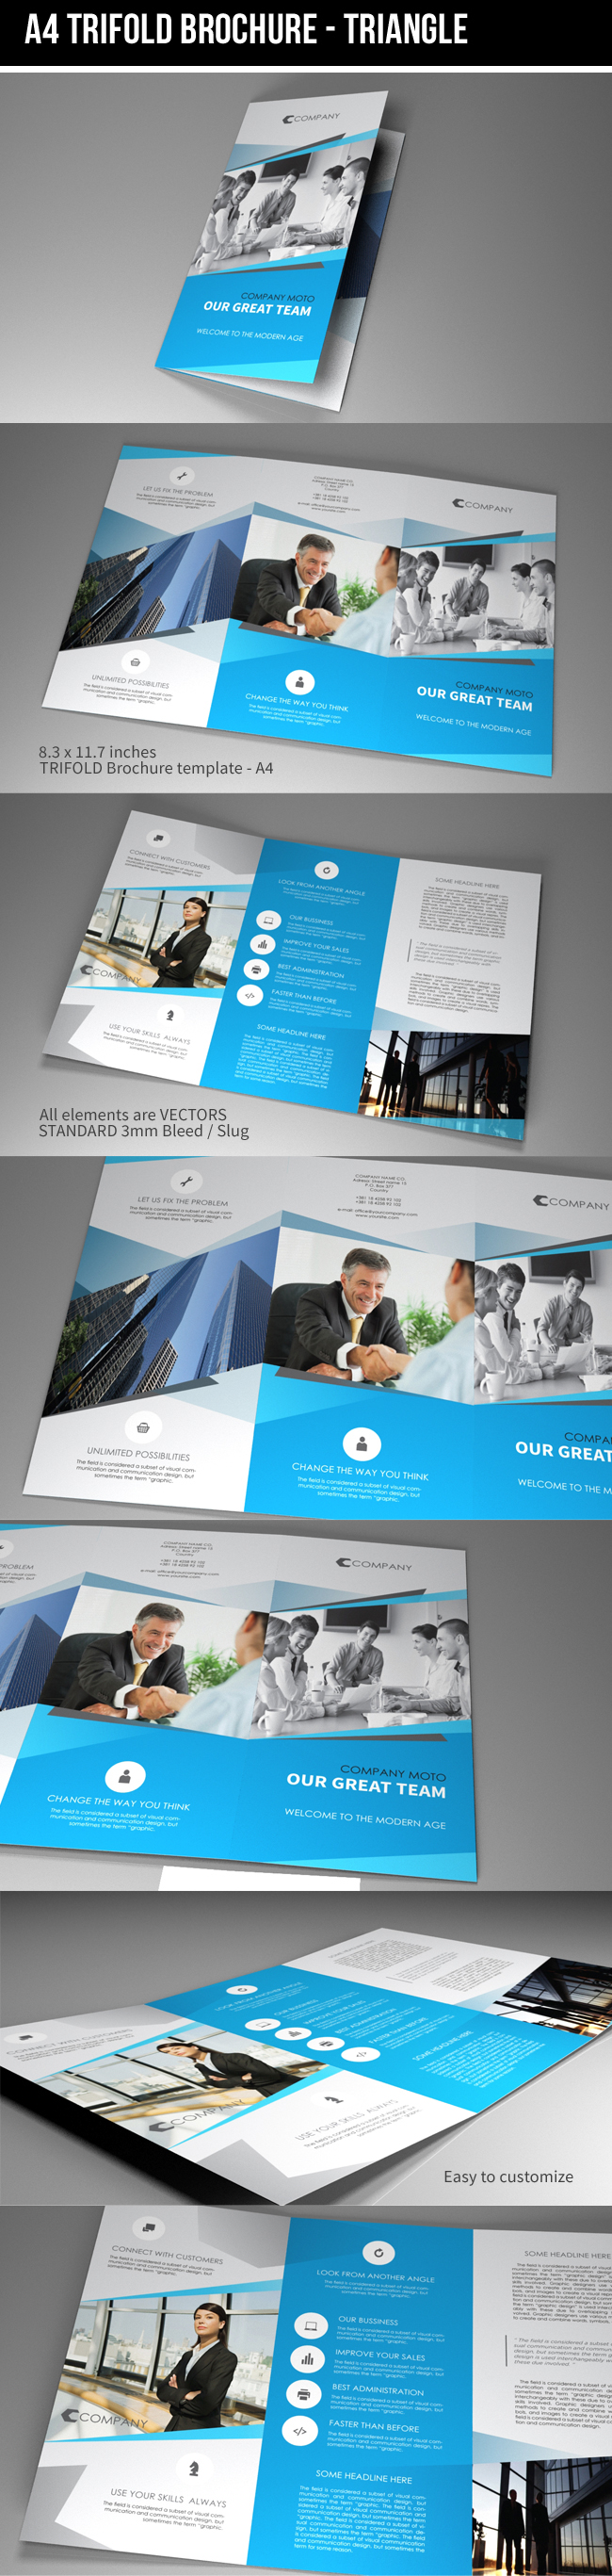 3 fold brochure template indesign - indesign template a4 trifold brochure triangle on behance